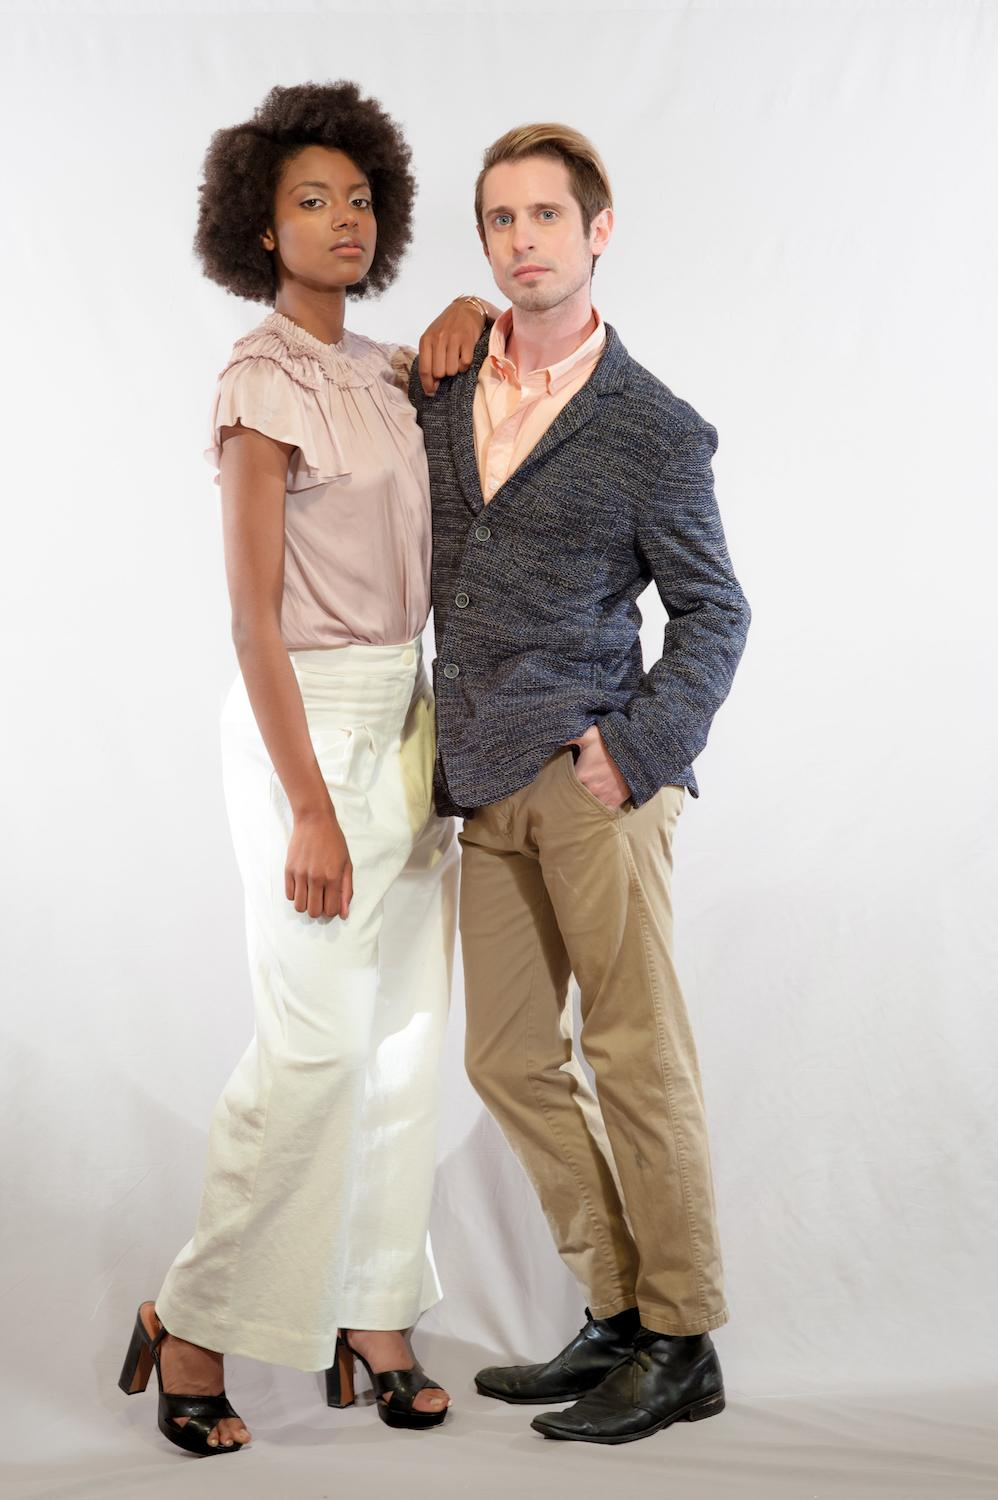 PARTY STYLE: Beach / Mauve top: (Ulla Johnson) Idlewild Woman / White Pants: (Ilana Kohn) Idlewild Woman / Blue knit blazer: (Krammer and Stoudt) Article / Peach button up: Saturdays New York City / Khaki trousers: Greyers / Image: Tifani Ahren Davis // Published: 5.17.17